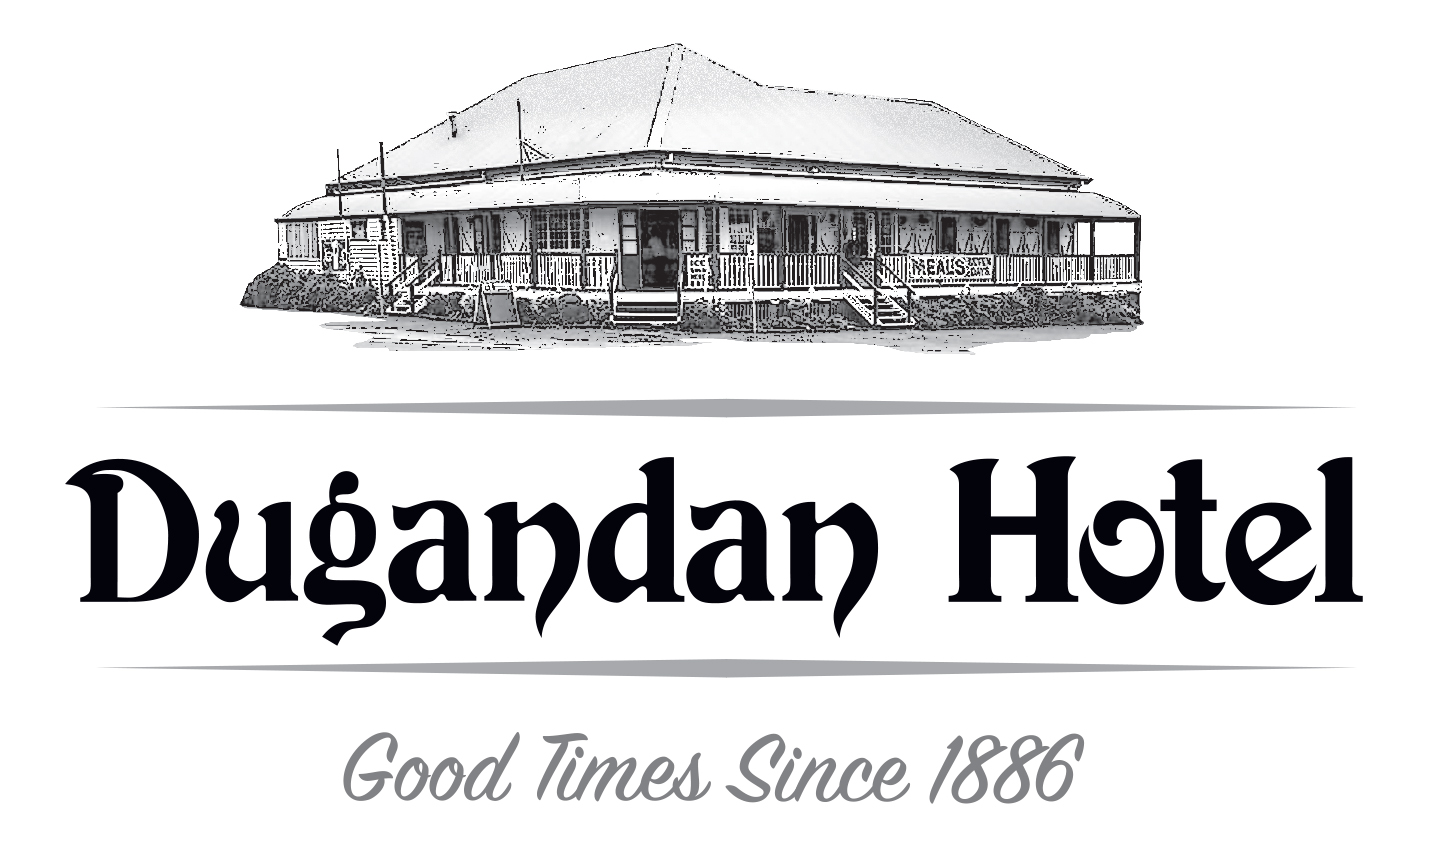 Dugandan Hotel - Accommodation in Bendigo